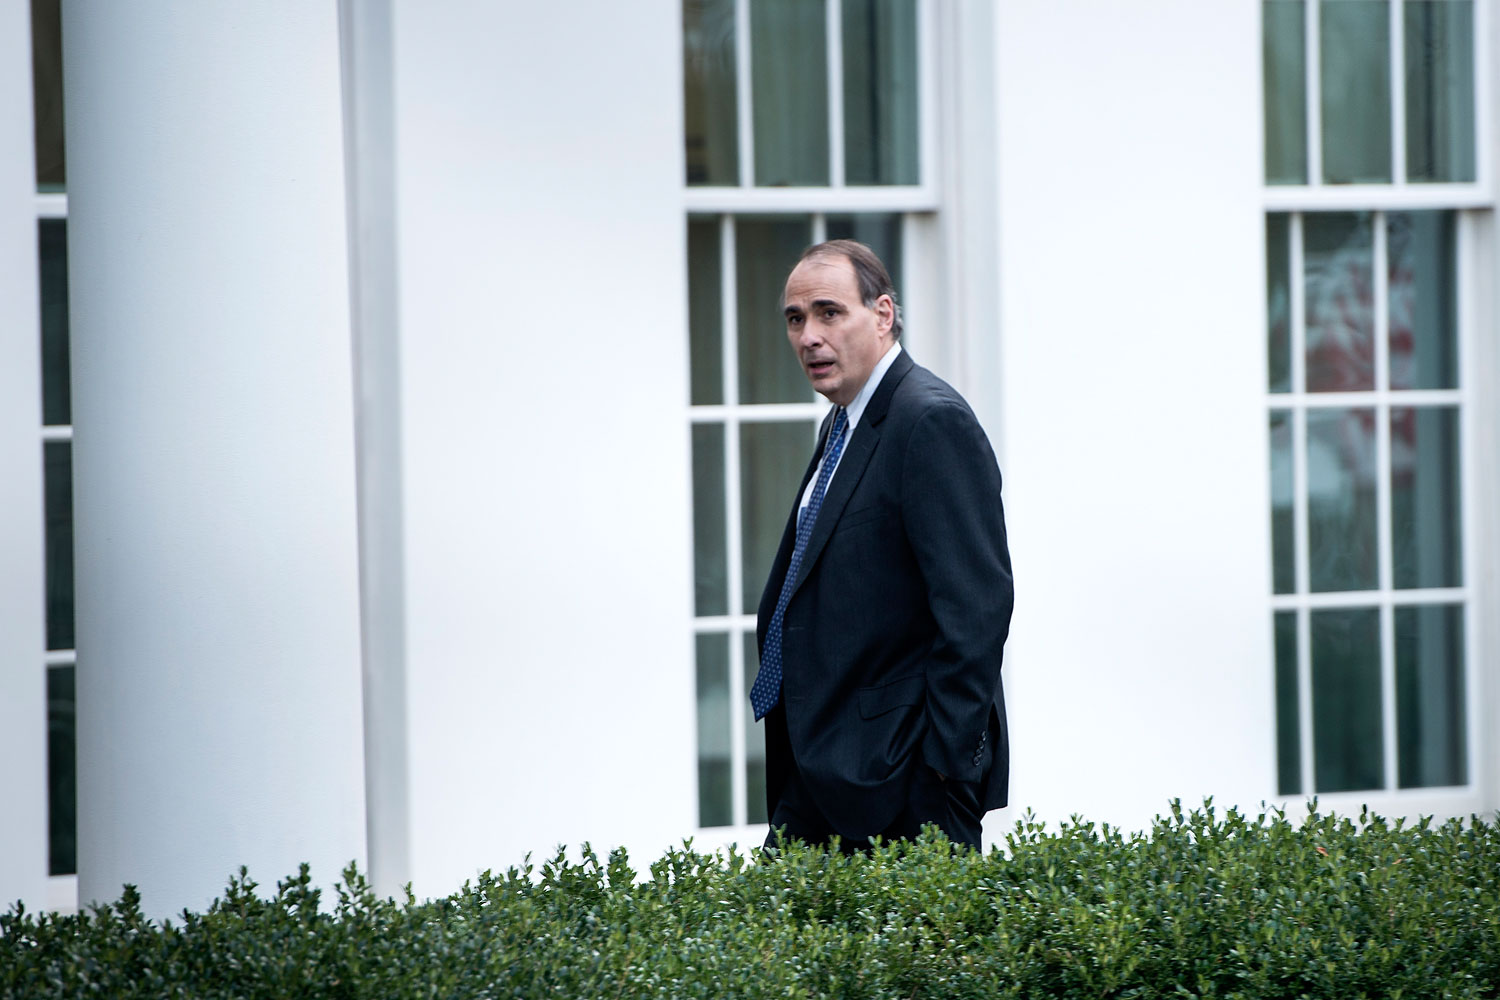 Former White House advisor David Axelrod walks into the West Wing of the White House on Nov. 15, 2013 in Washington.